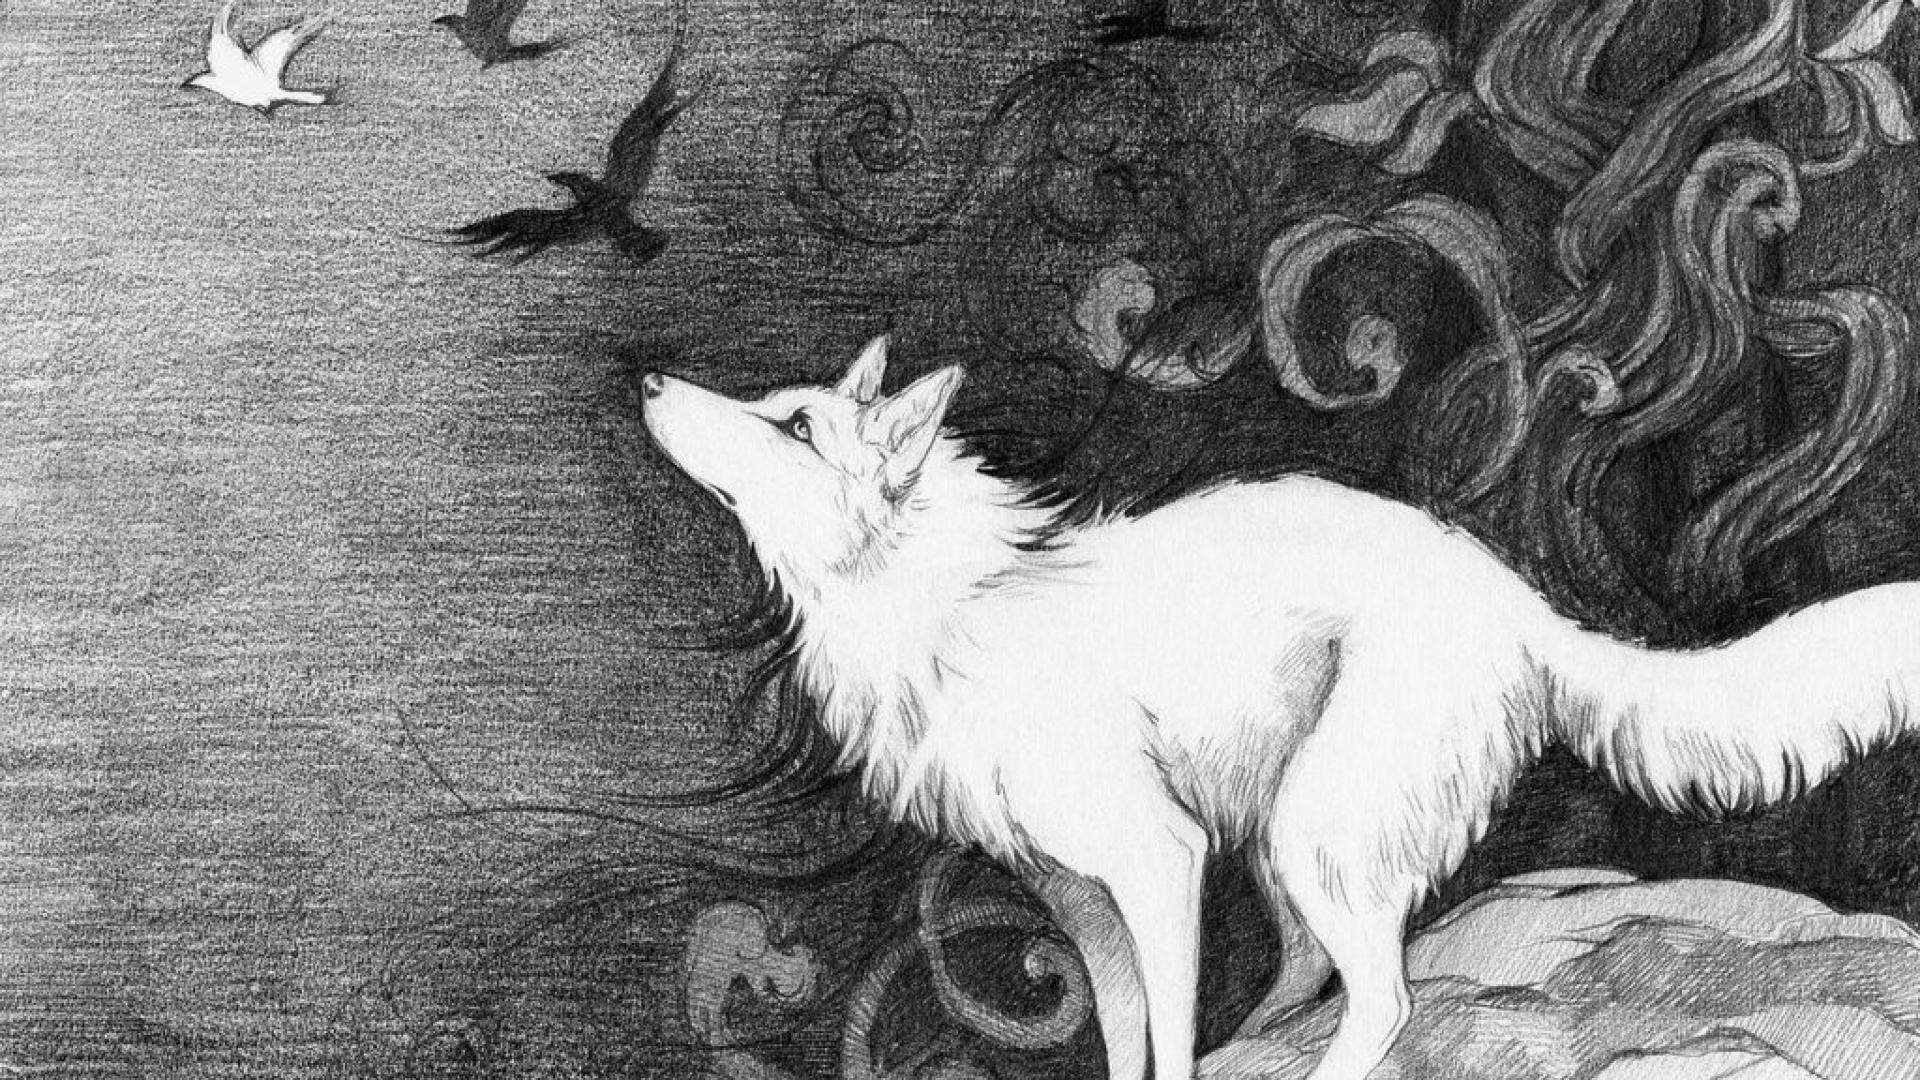 Black And White Wolf Wallpaper Hd 1920x1080 Download Hd Wallpaper Wallpapertip